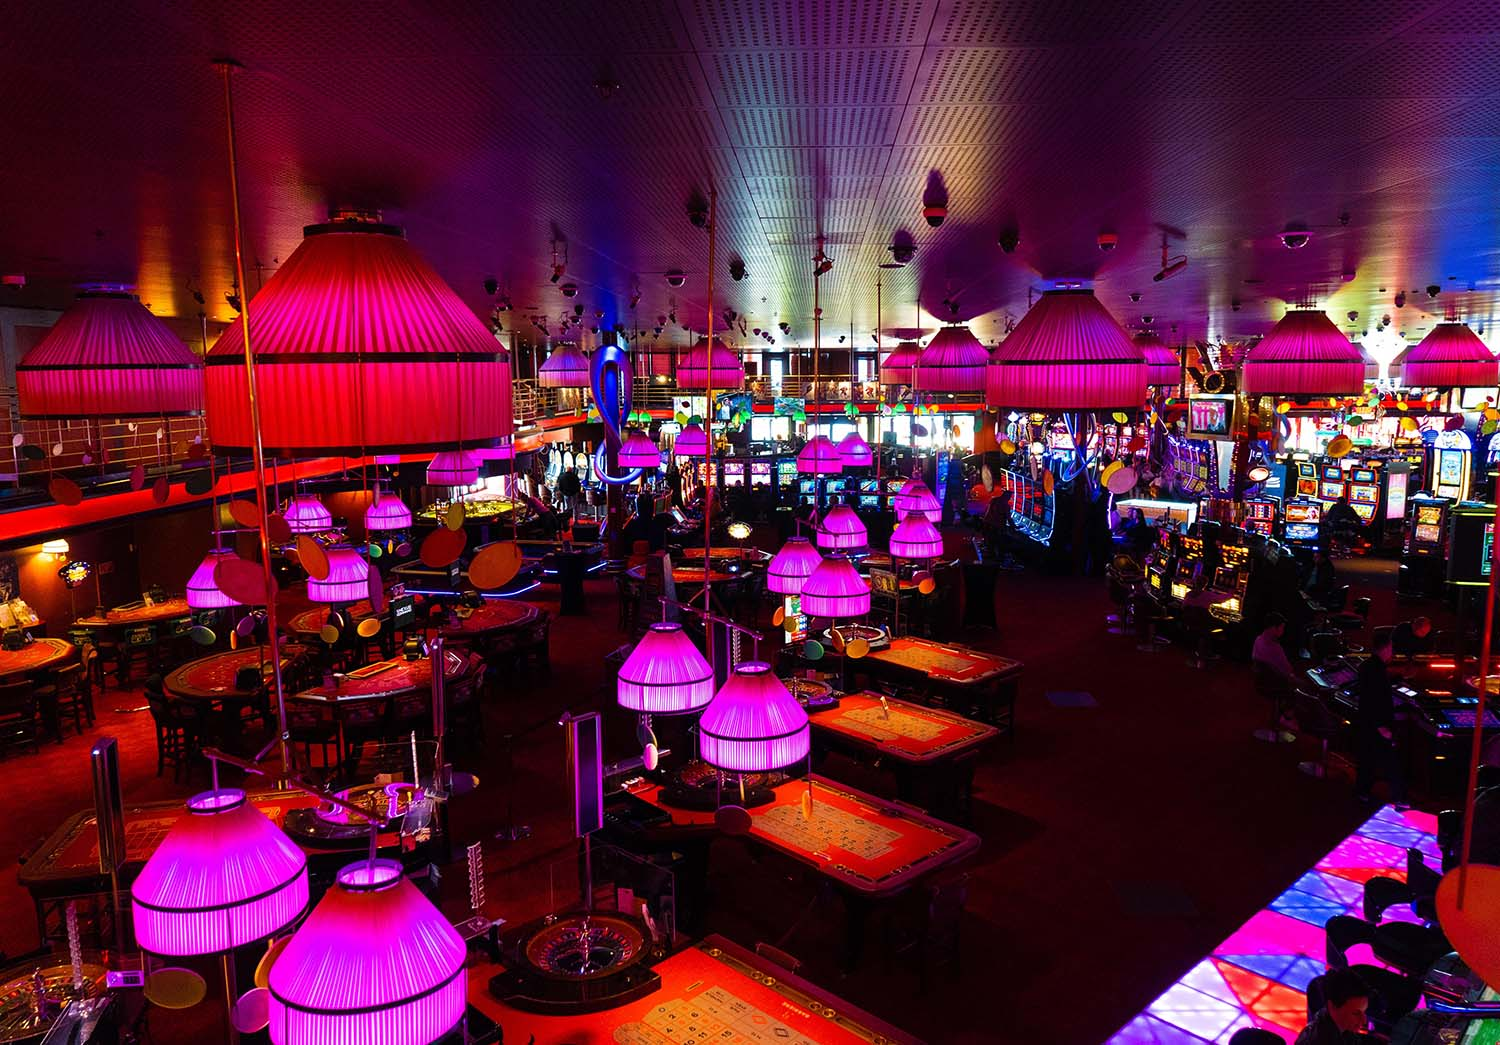 Casino Design Psychology: Planned to Spend